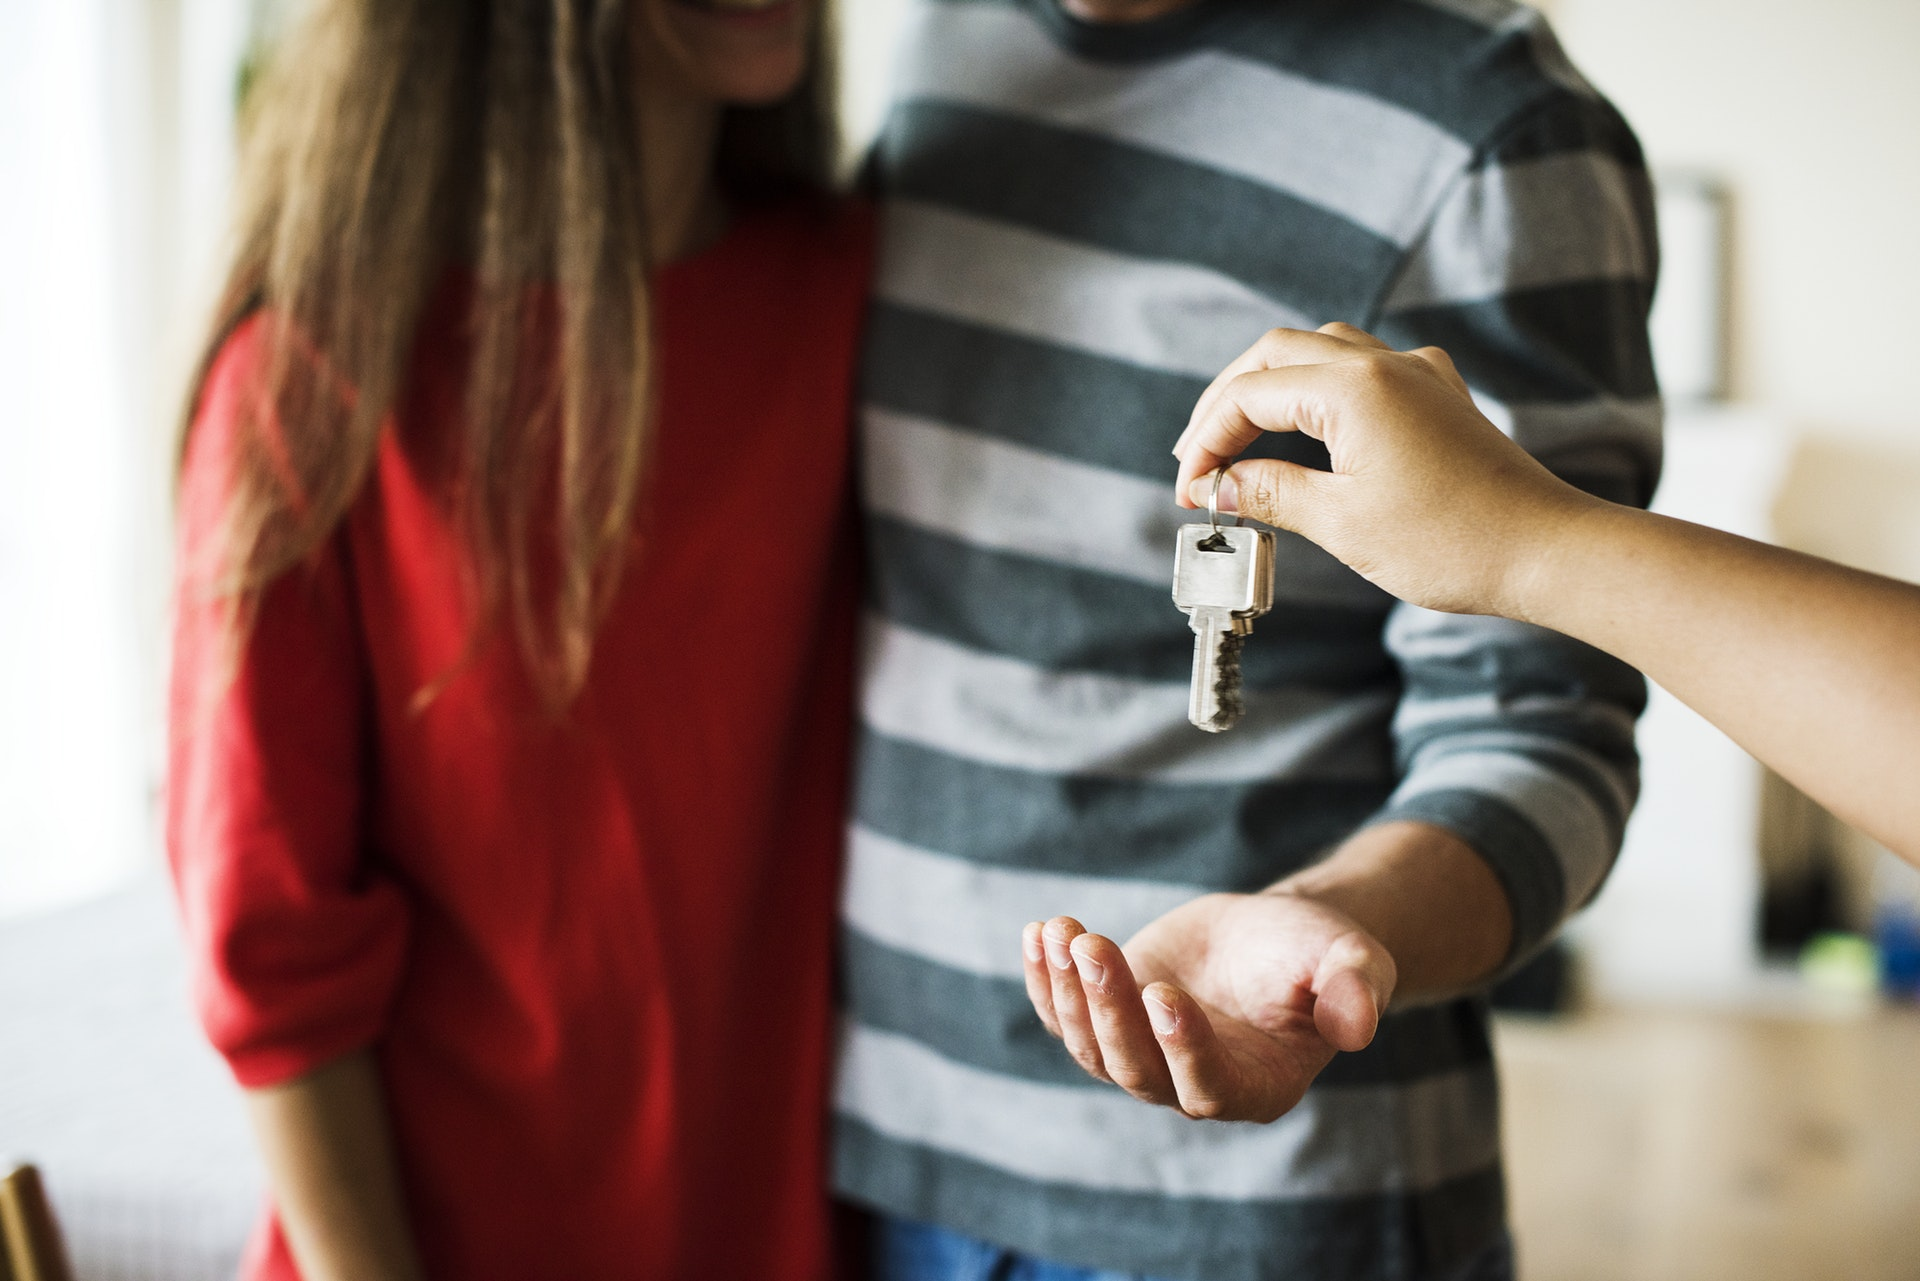 Decorative image of person handing over keys.